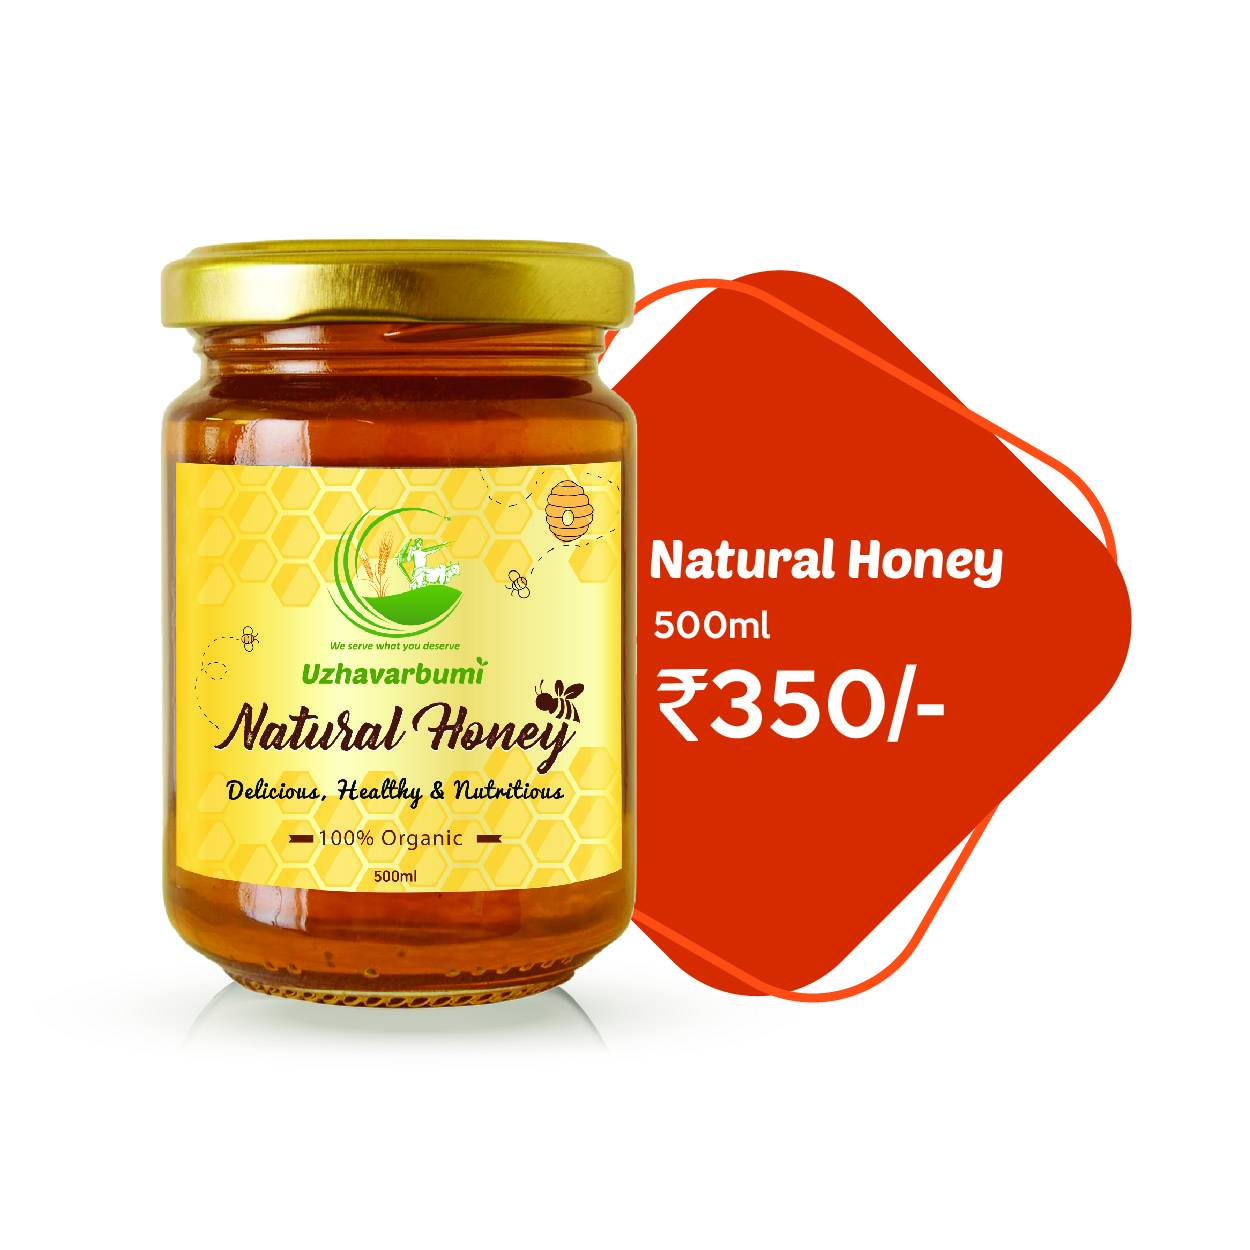 UzhavarBumi's Natural Honey